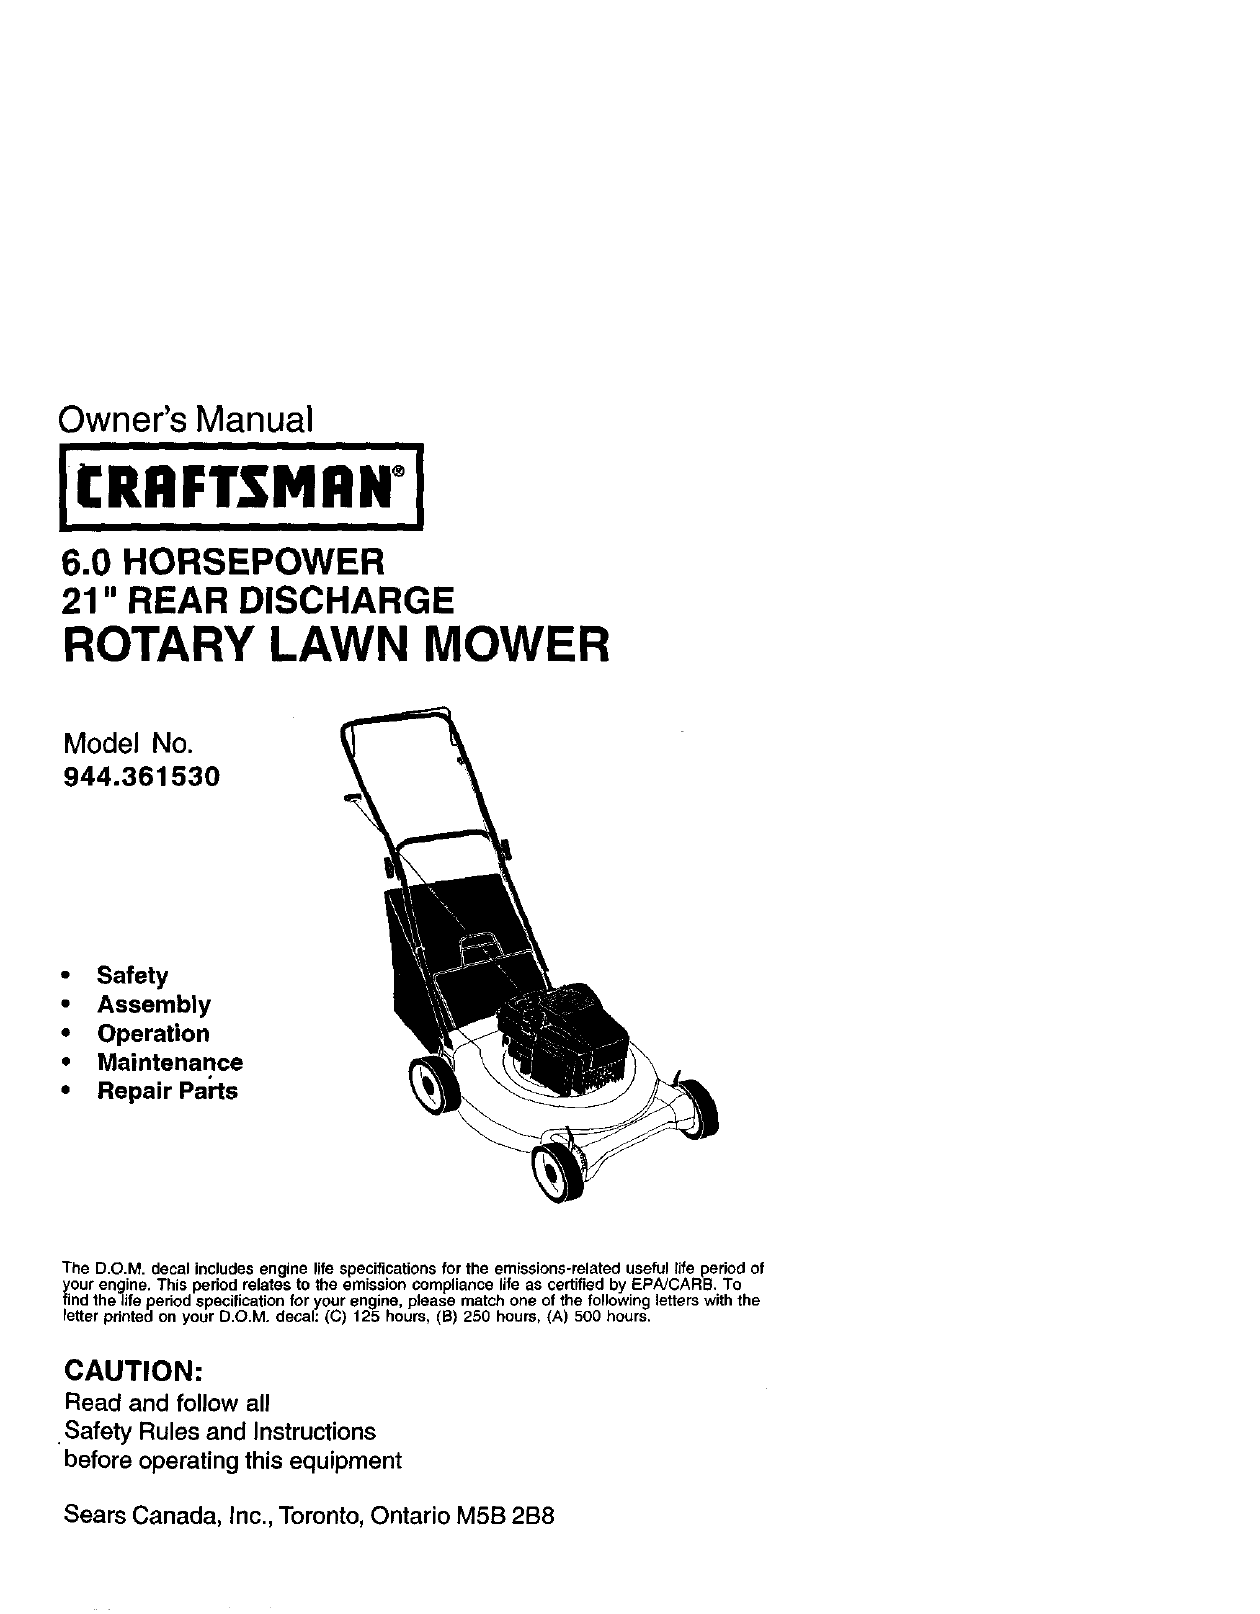 craftsman lawn mower 944 36153 user guide manualsonline com rh lawnandgarden manualsonline com Sears Craftsman Manuals Model Number craftsman lawn tractor model 944 manual